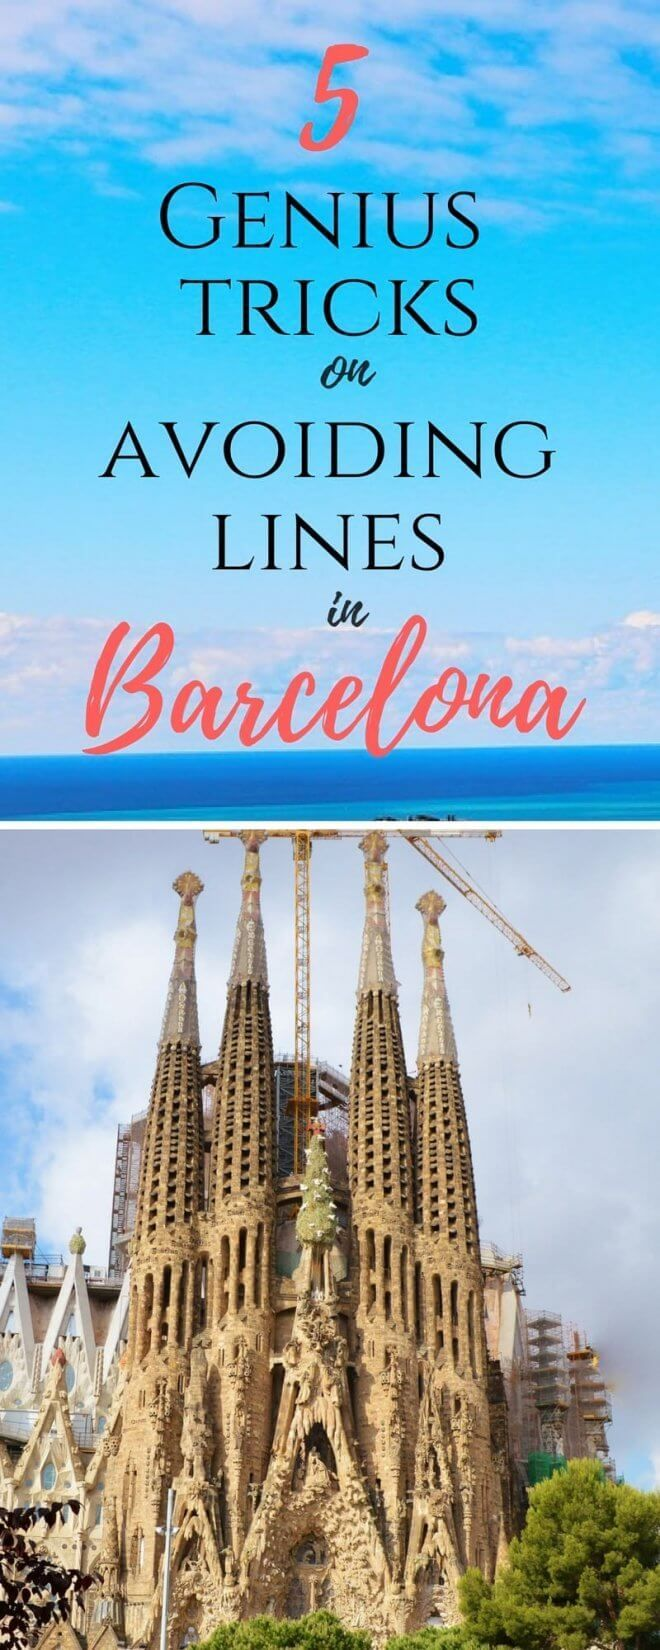 Here are some genius tricks on avoiding the lines to the most crowded places in Barcelona. Things to do in, Las Ramblas, Food, Travel, Beach, Nightlife, Architecture, Sagrada Familia, Casa Mila, Casa Battlo, Picasso Museum, Park Guell, Qothic Quarter, top 10, Bucket list, Free Activities, With Kids